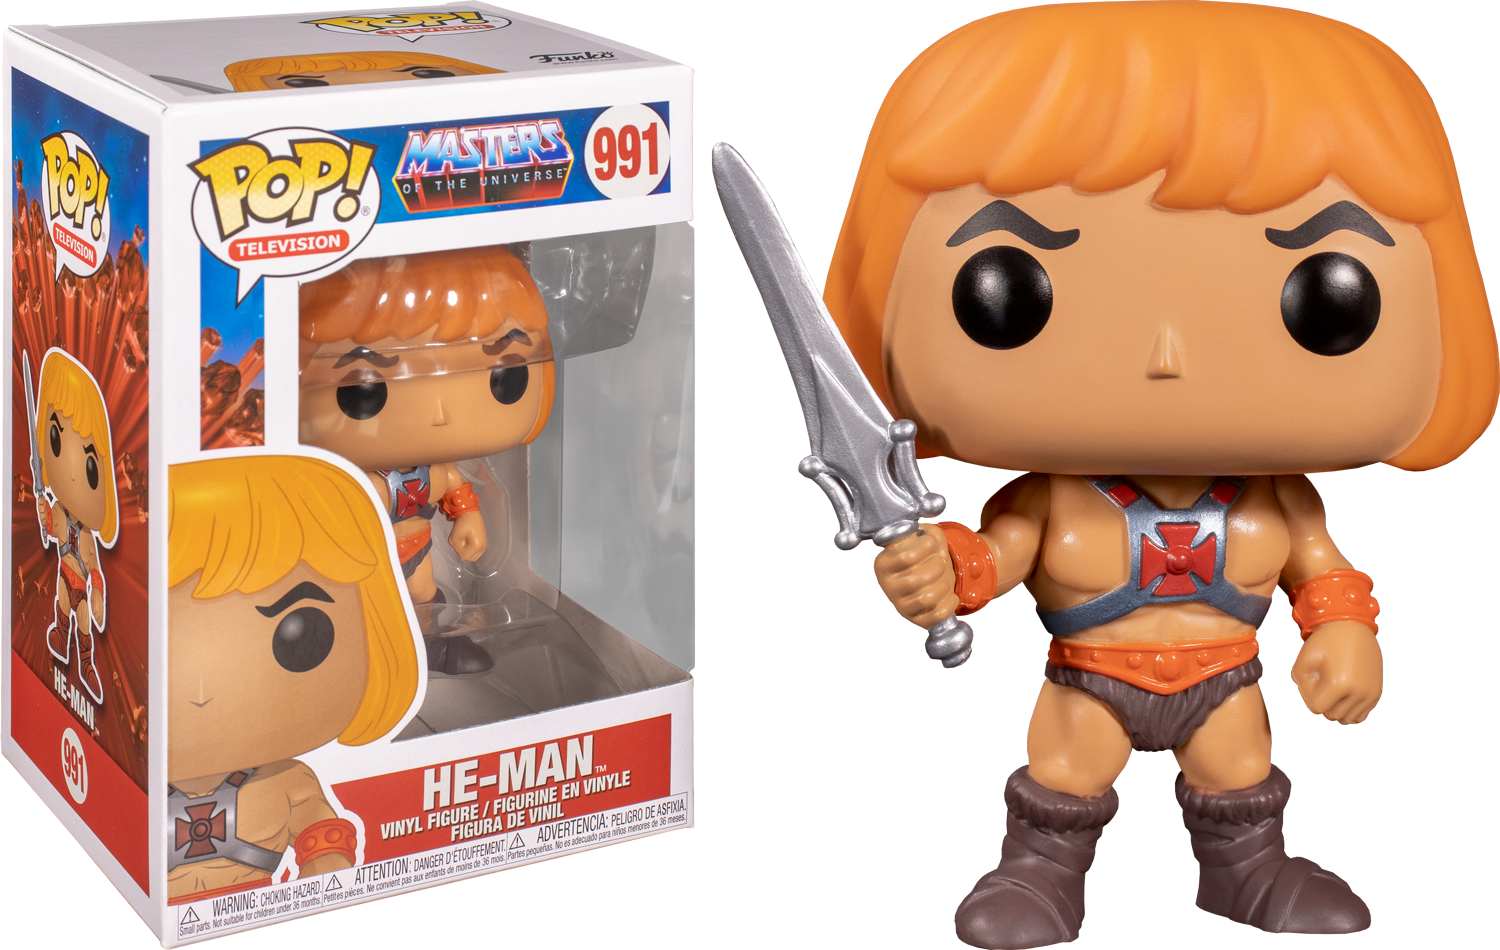 He-Man - Masters of the Universe Pop! Vinyl Figure